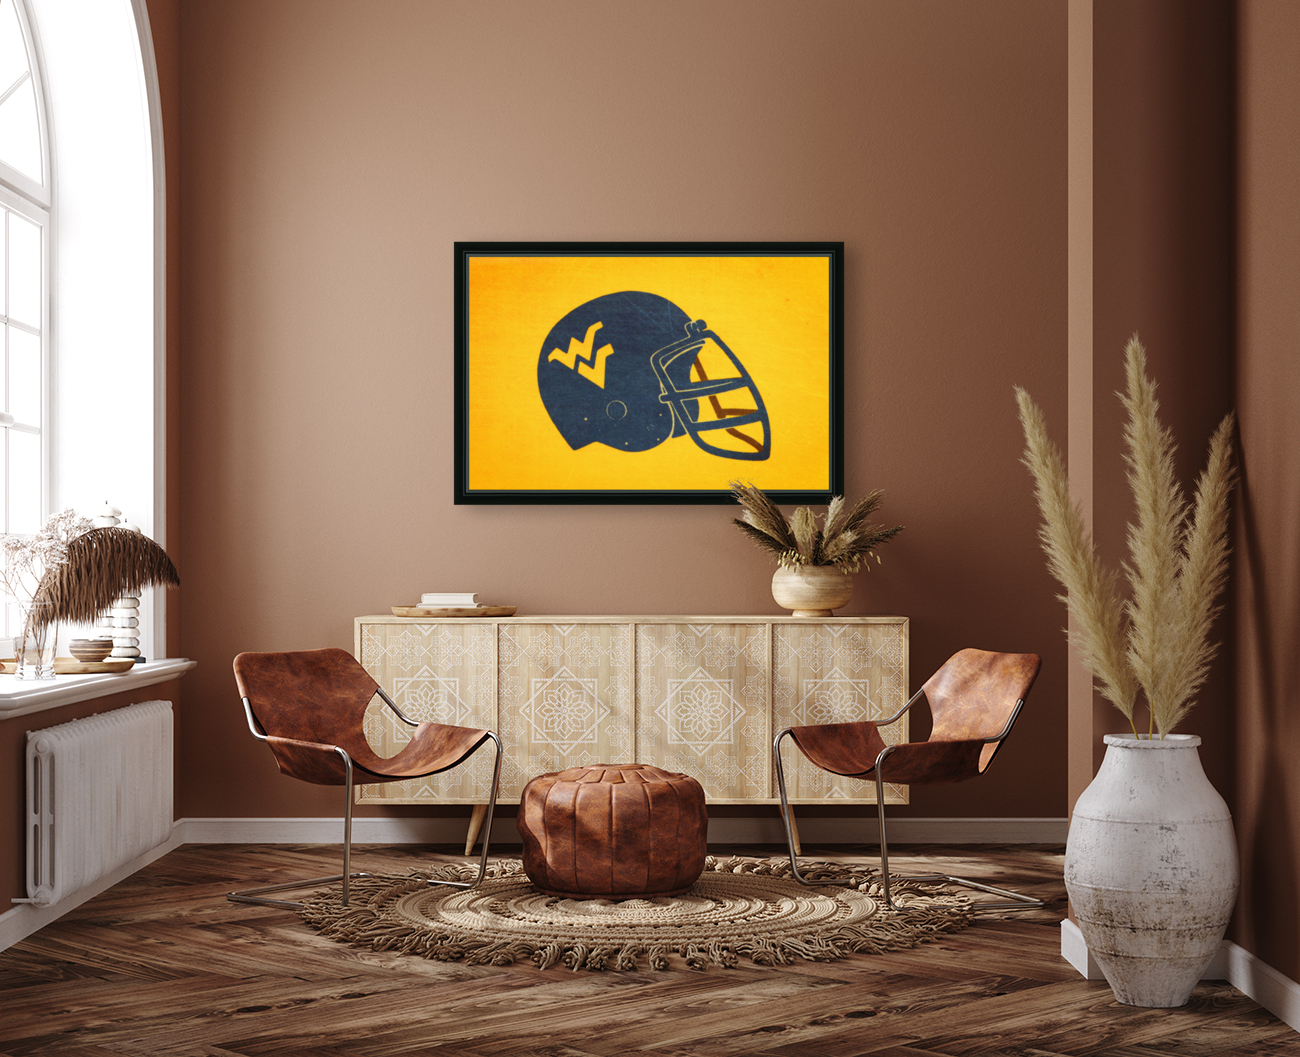 1985 West Virginia Mountaineers Football Helmet Art  Art